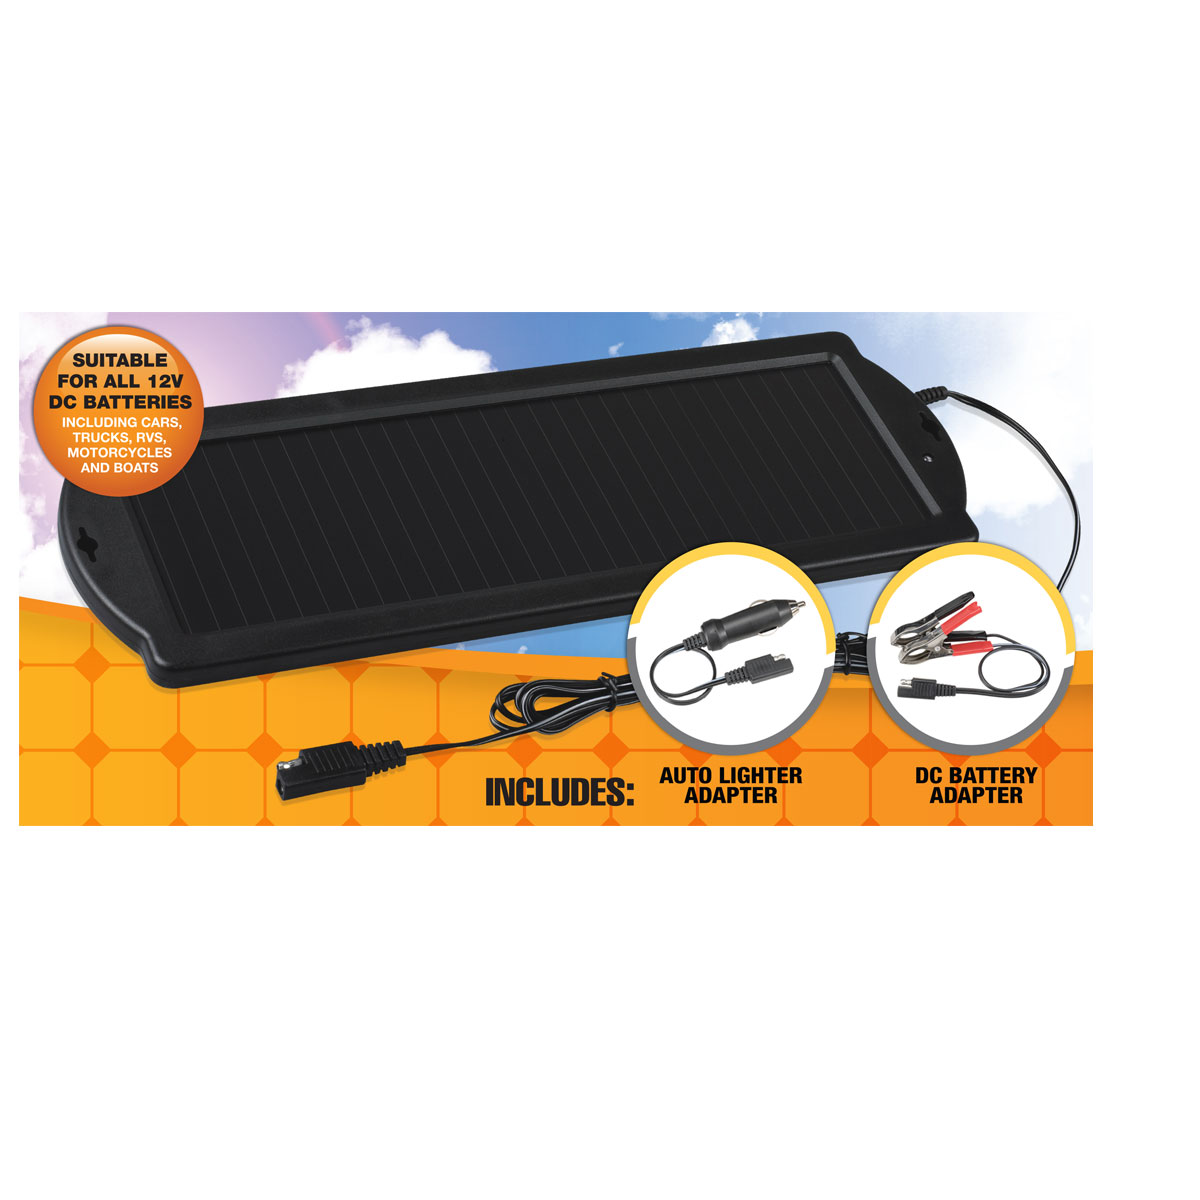 3192995 as well Nature Power Solar Battery Charger Kit Battery Or together with Solar Car Battery Charger additionally Solarland 12v 5 Watt Solar Panel Slp005 12u W also respond. on solar battery trickle charger reviews